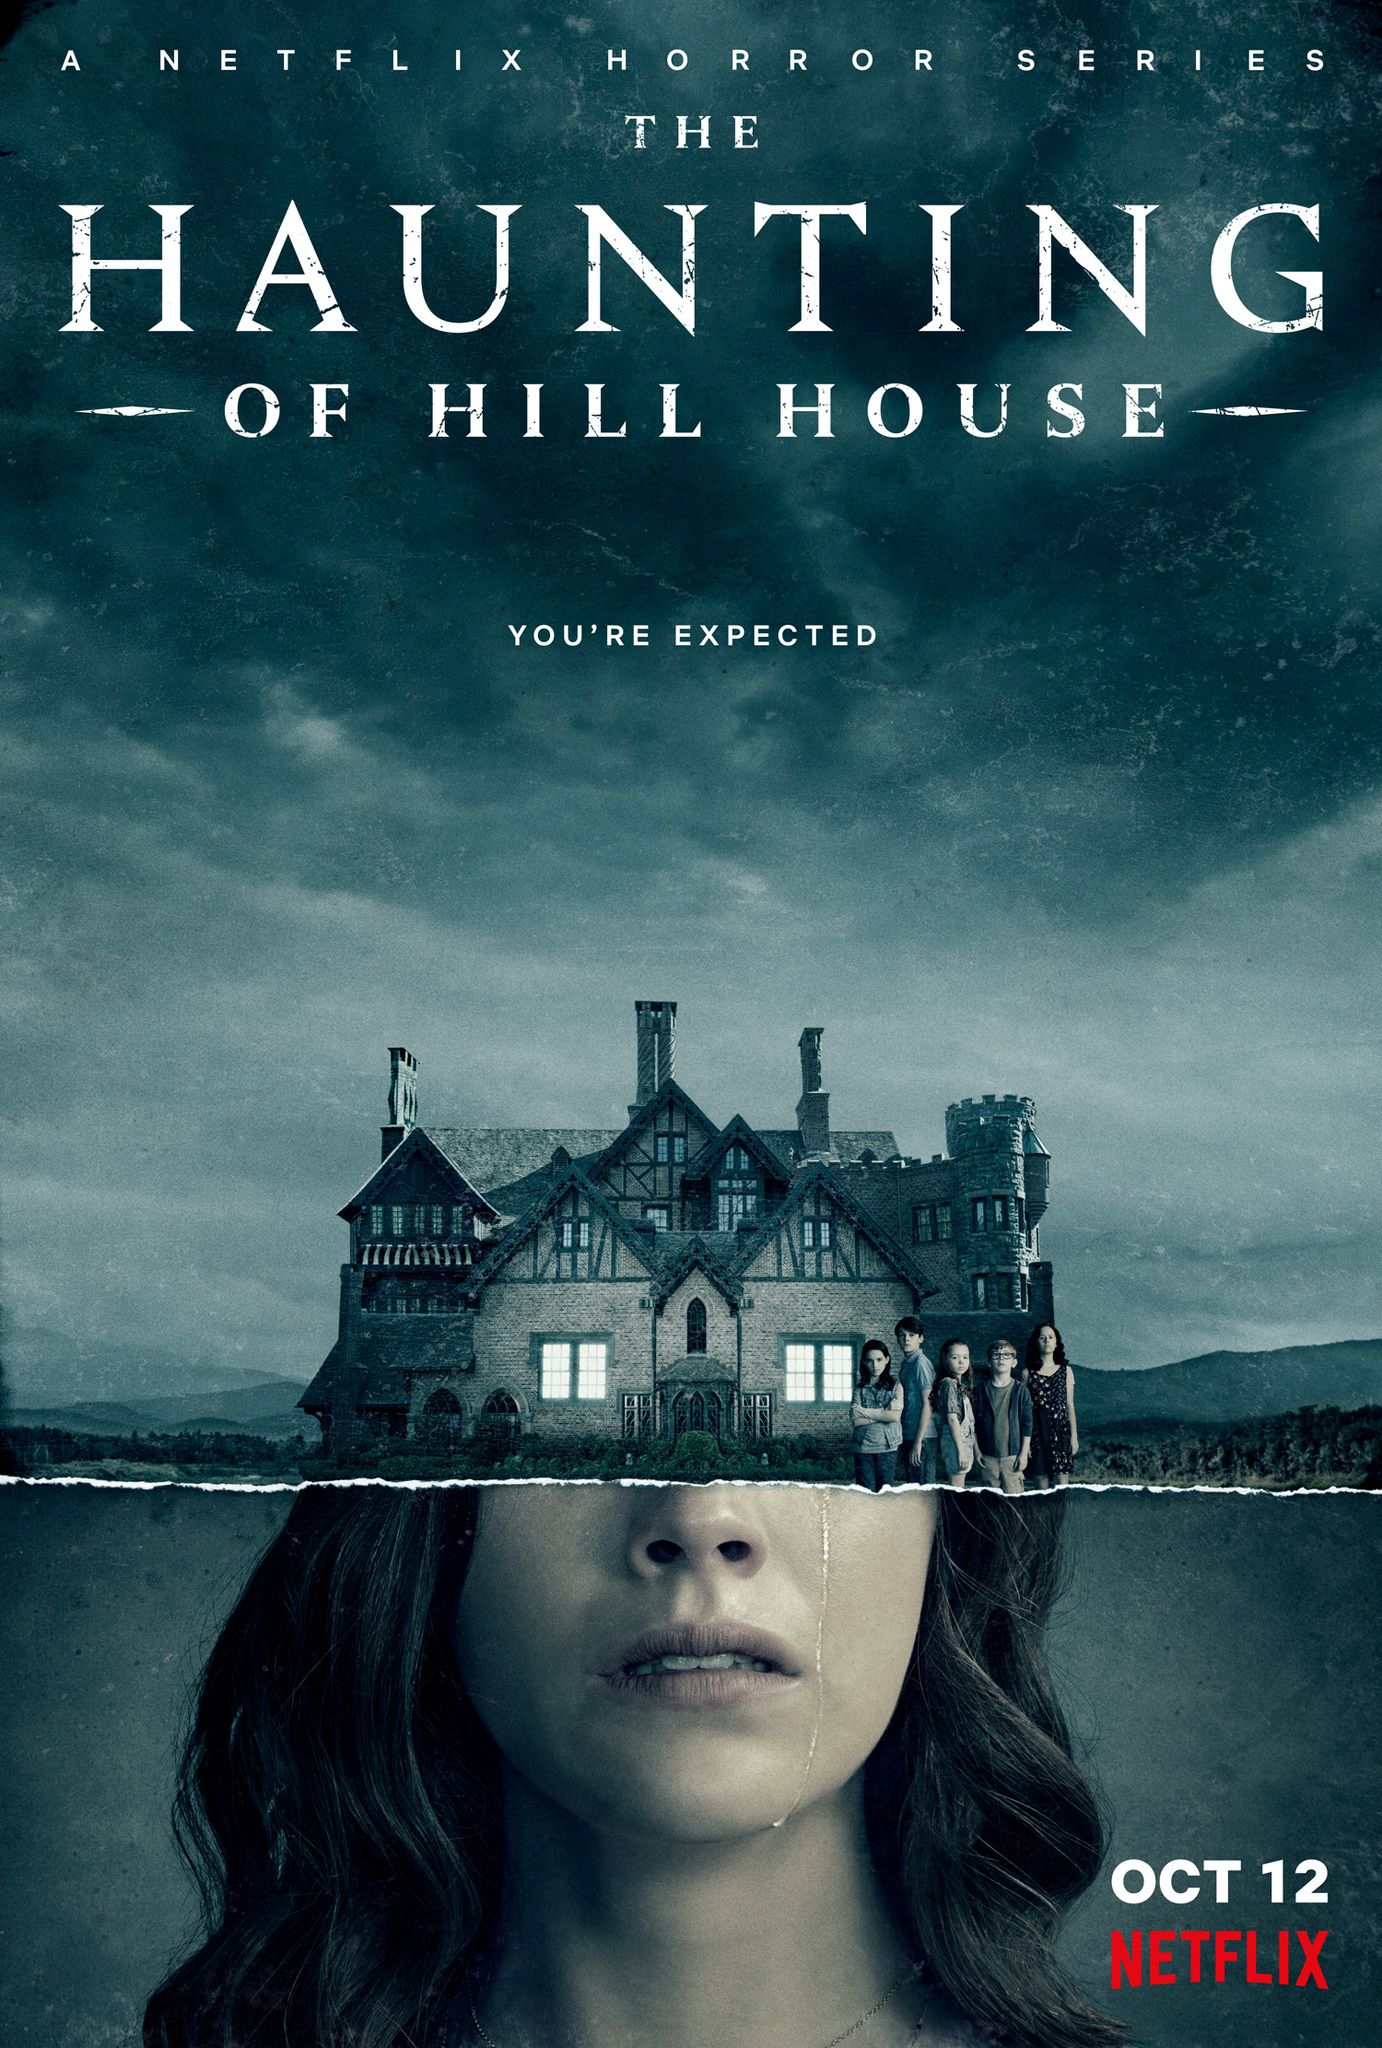 The Haunting of Hill House (TV Series 2018– ) - IMDb